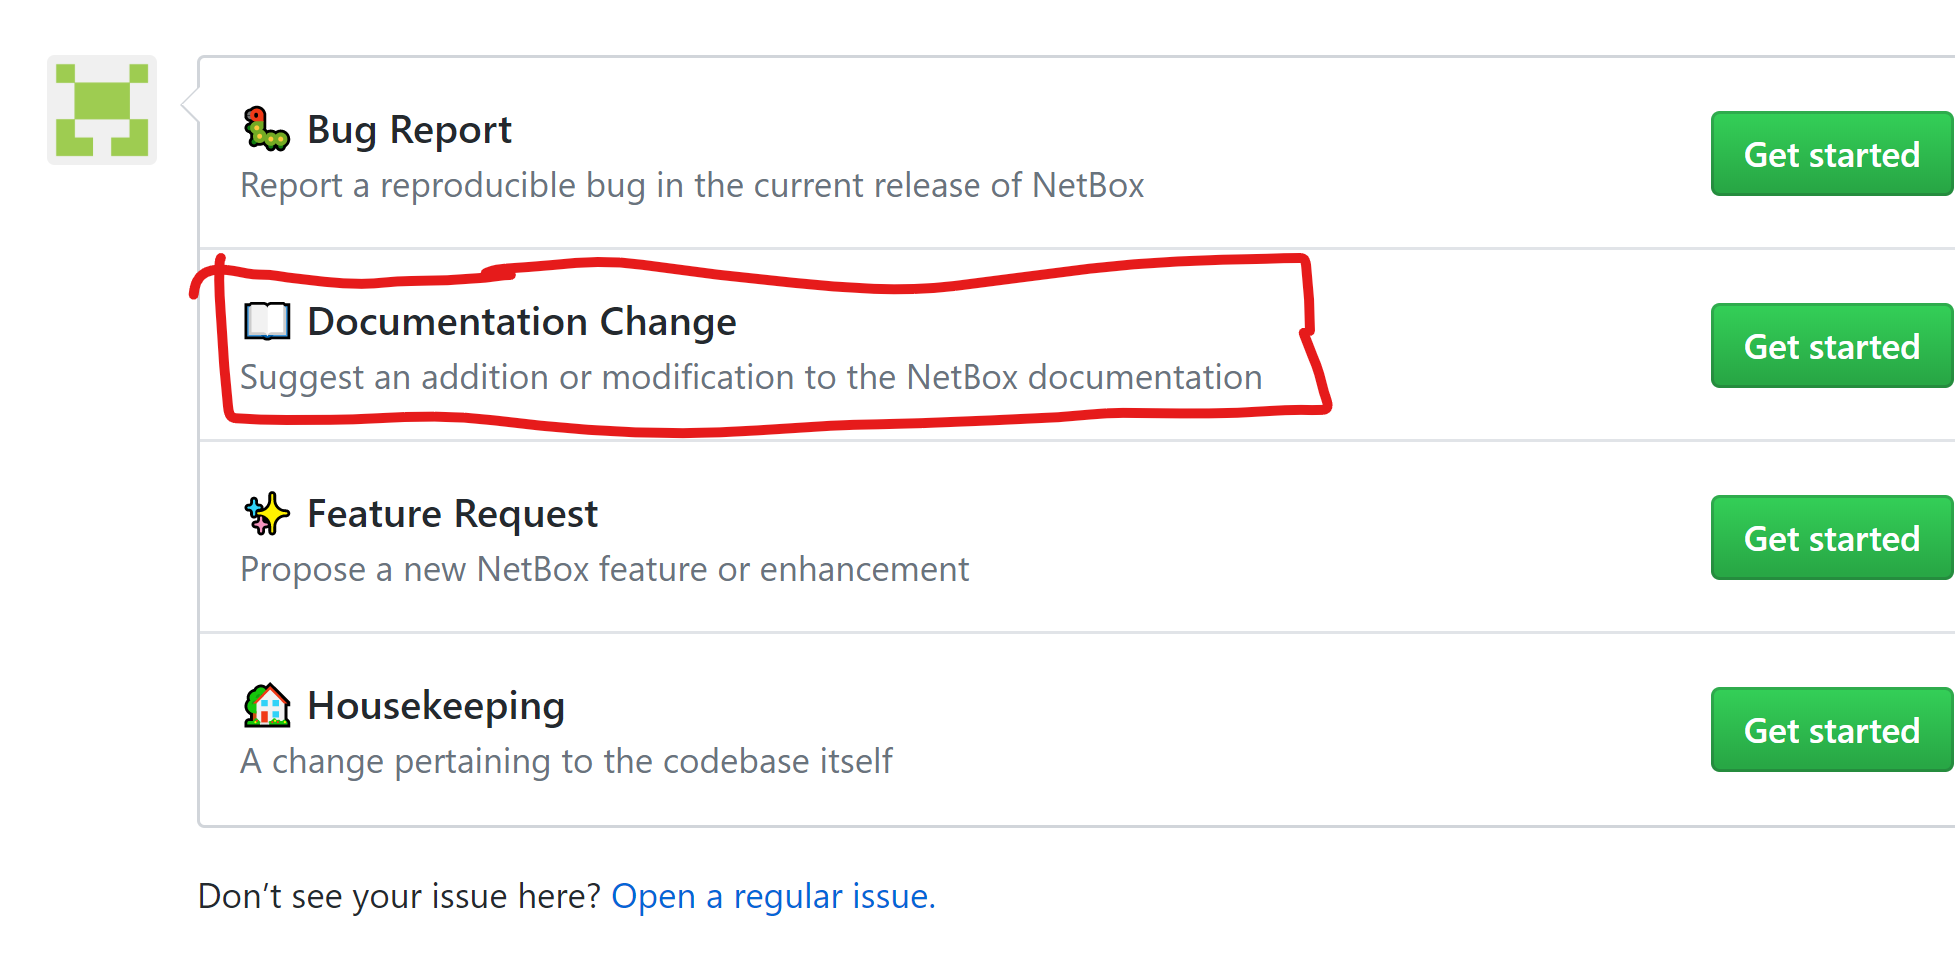 Howto uninstall Netbox? · Issue #3214 · netbox-community